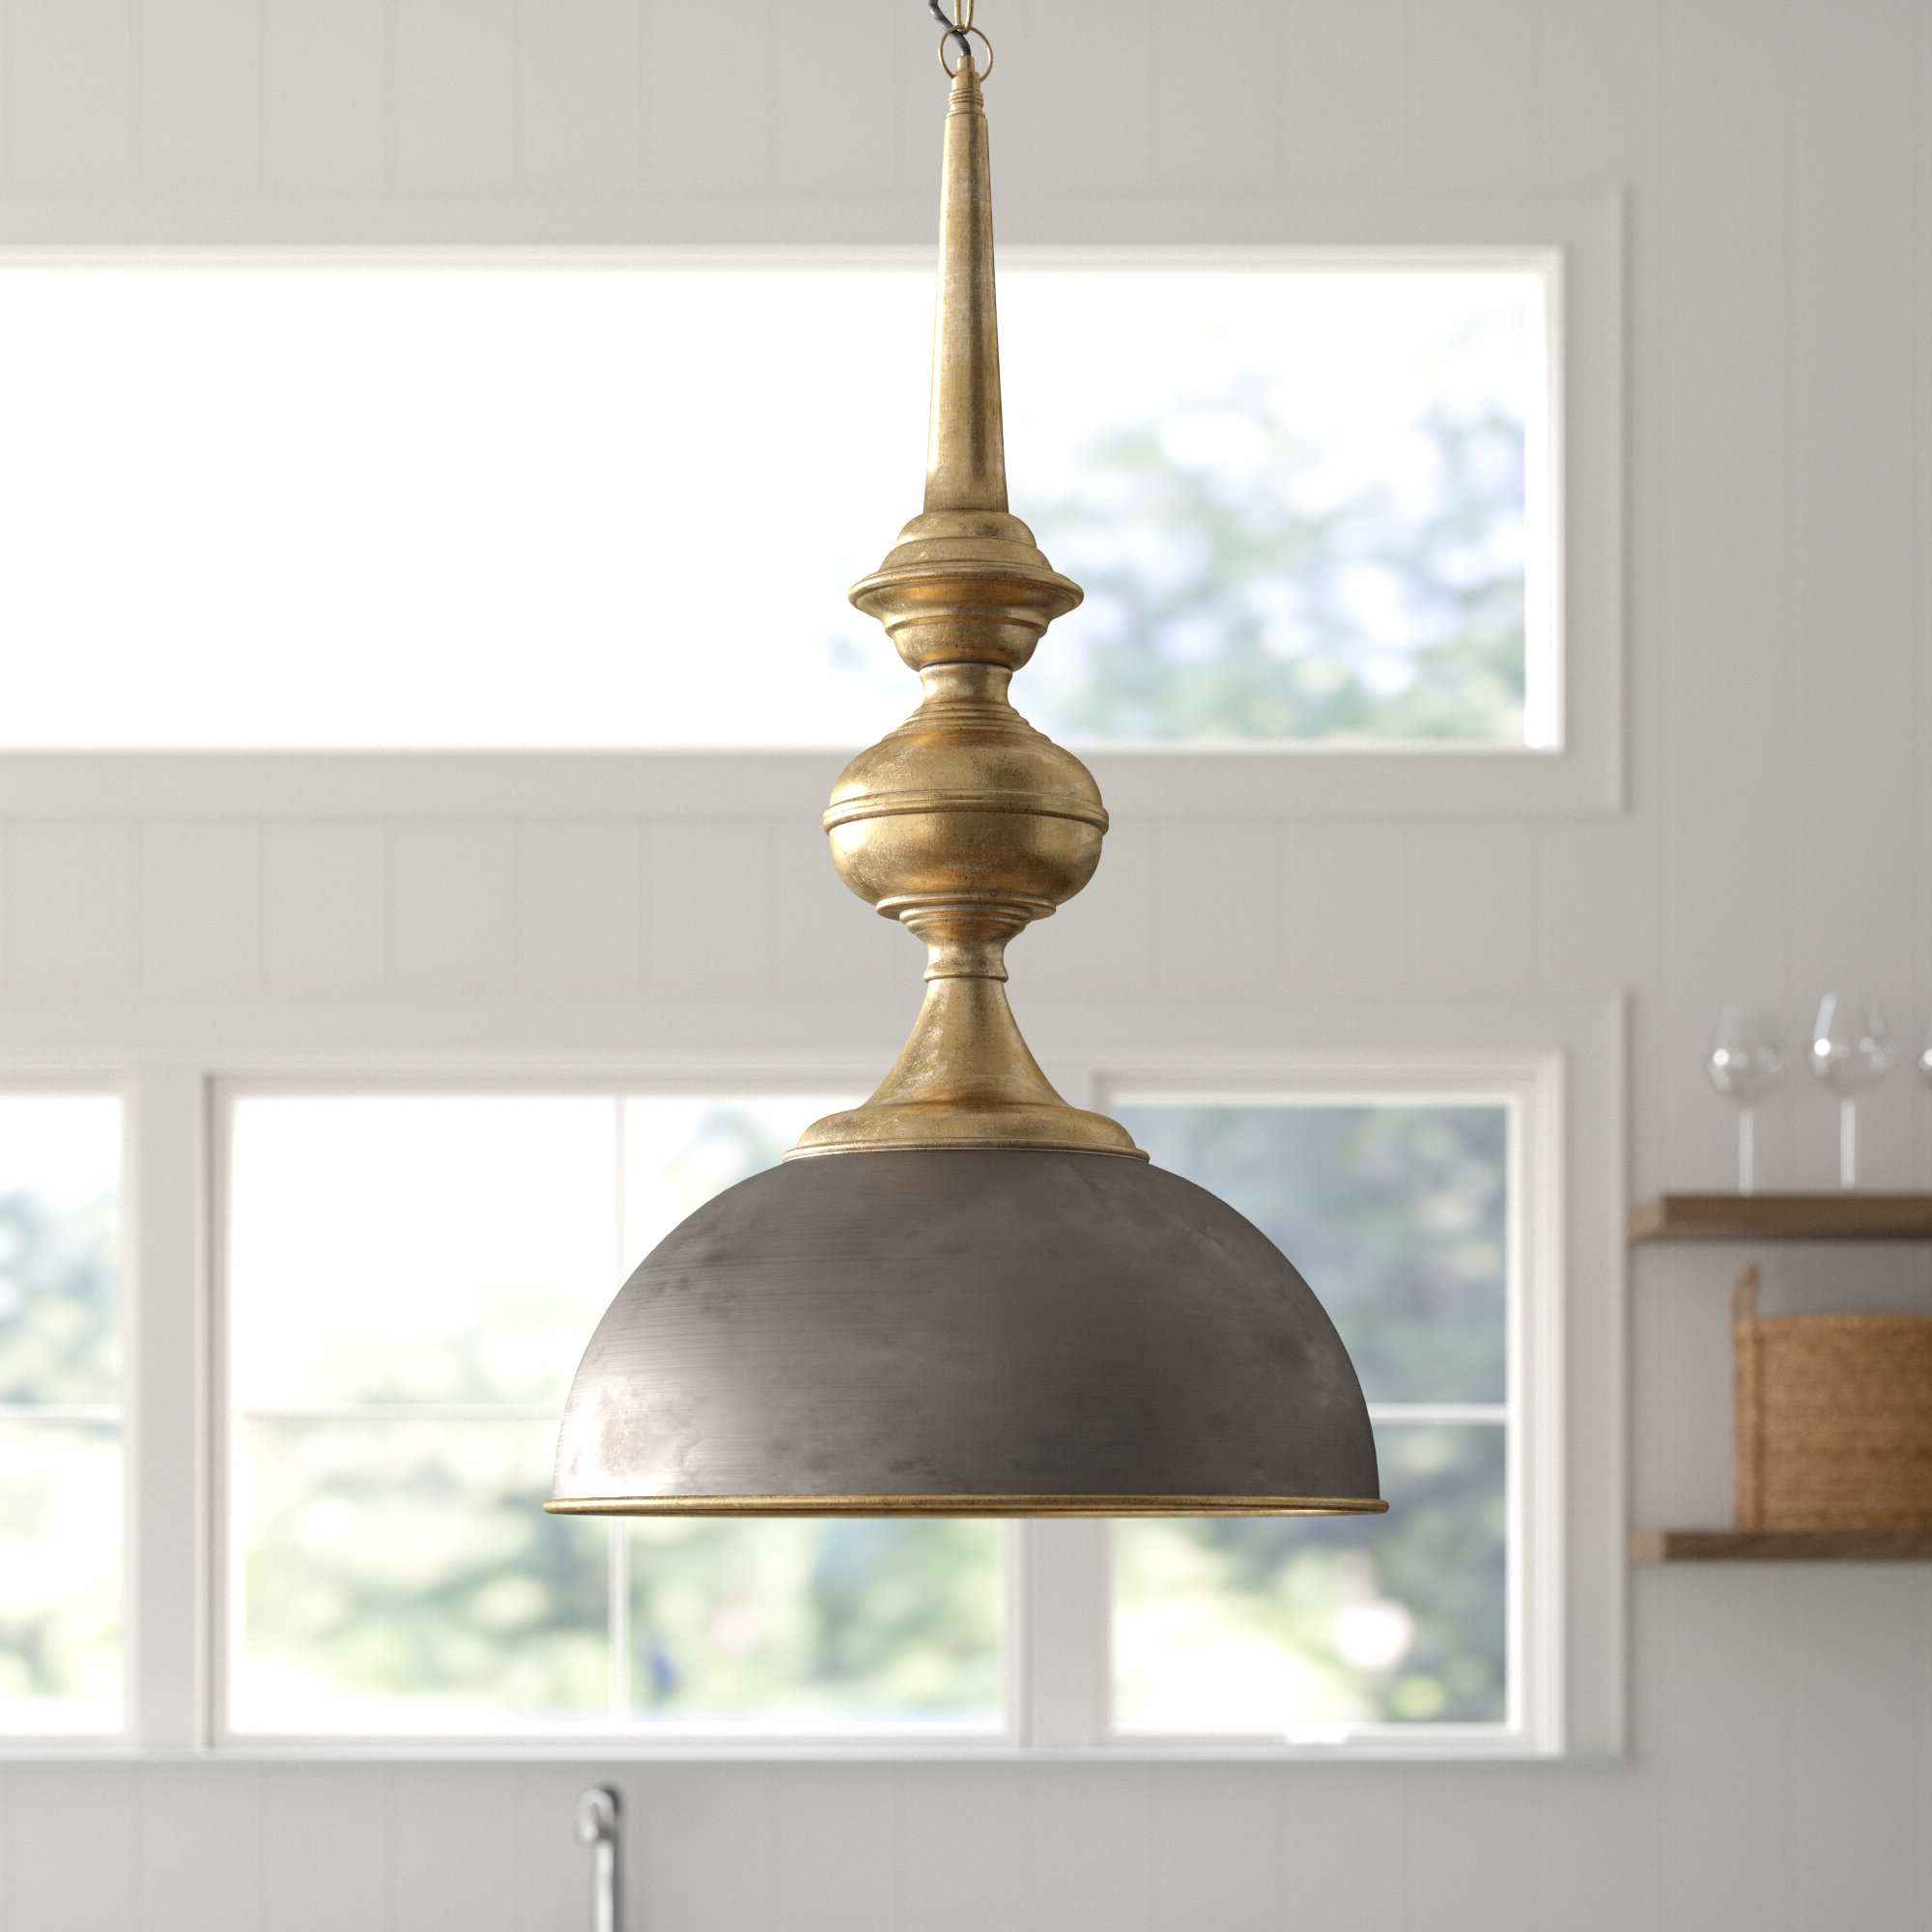 Widely Used Corrine 1 Light Single Dome Pendant Intended For Grullon Scroll 1 Light Single Bell Pendants (View 5 of 20)